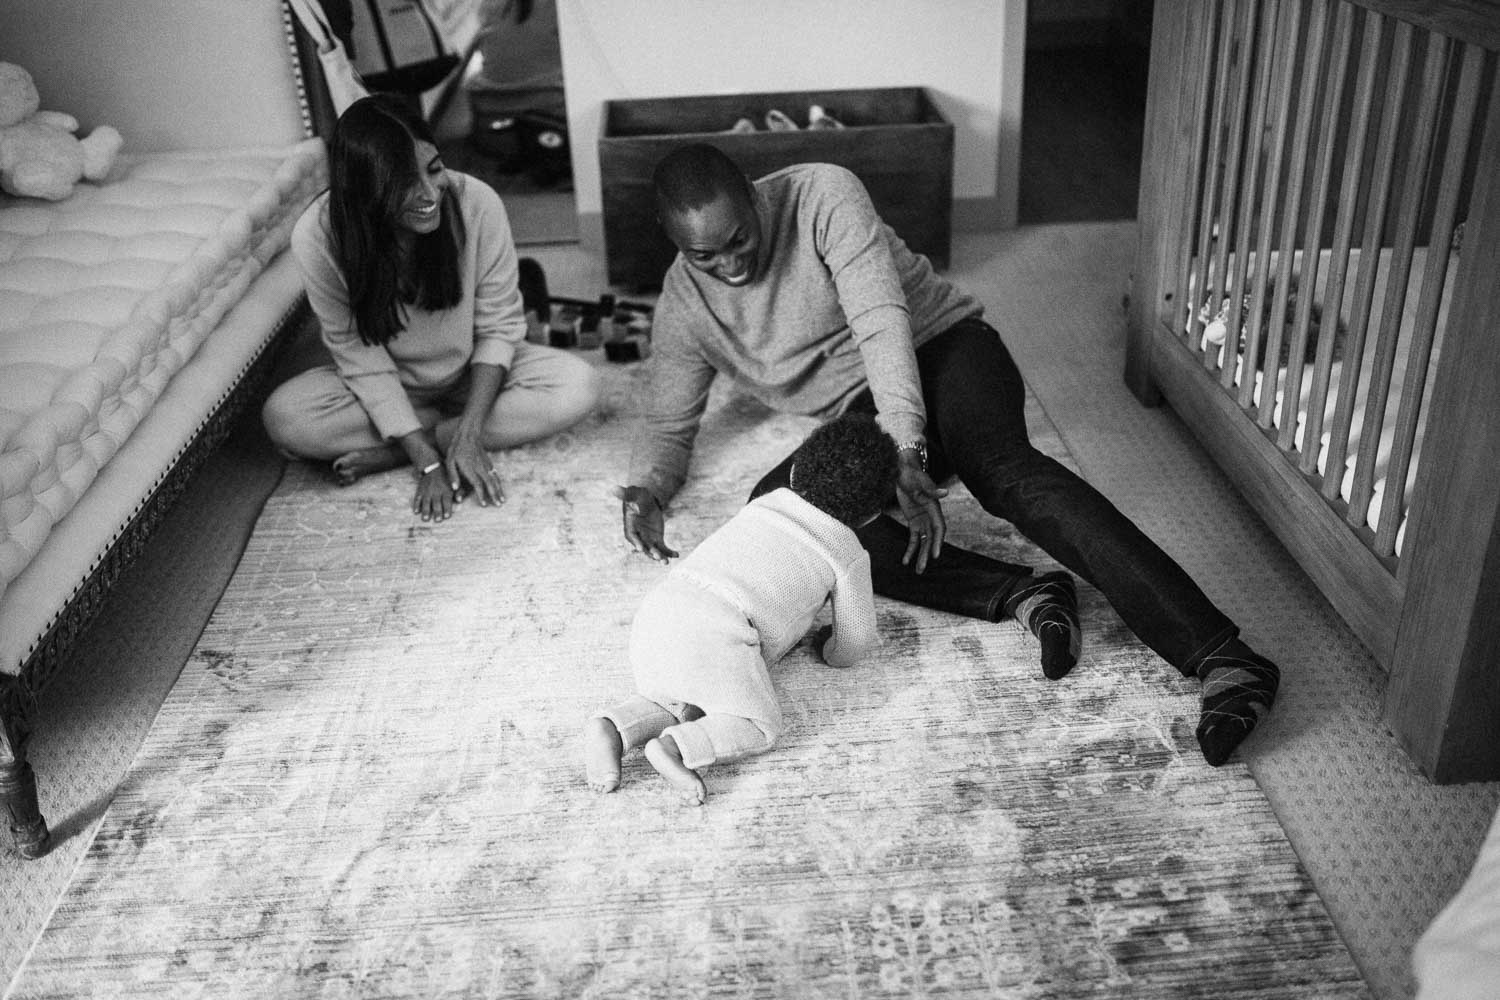 candid-black-and-white-photo-of-parents-laughing-and-playing-on-floor-with-child-la-california